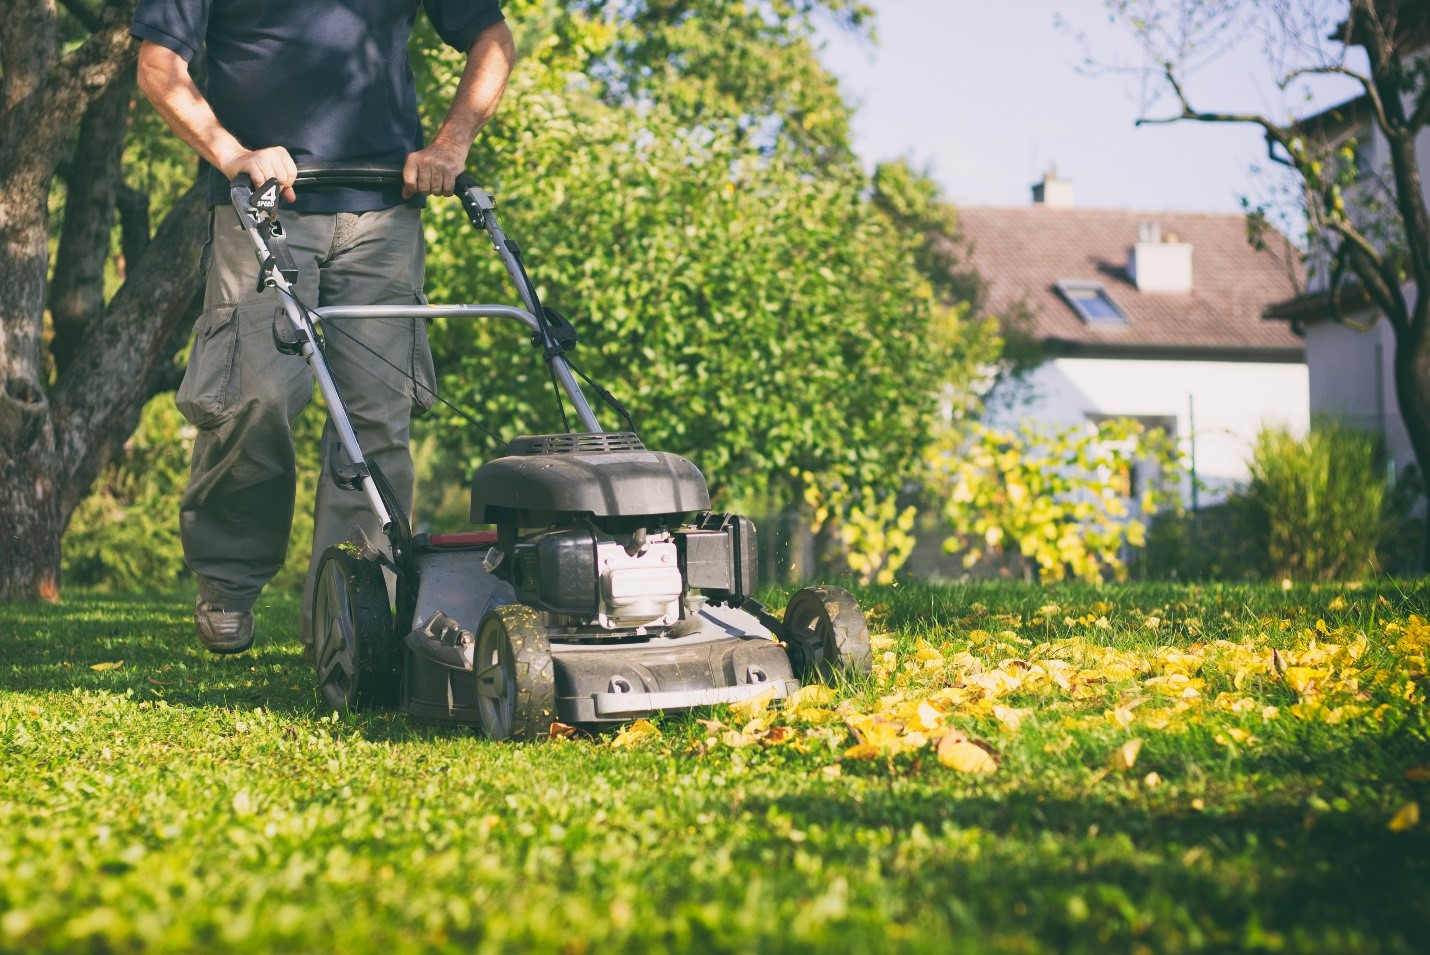 Prepare Your Lawn for the Winter Months